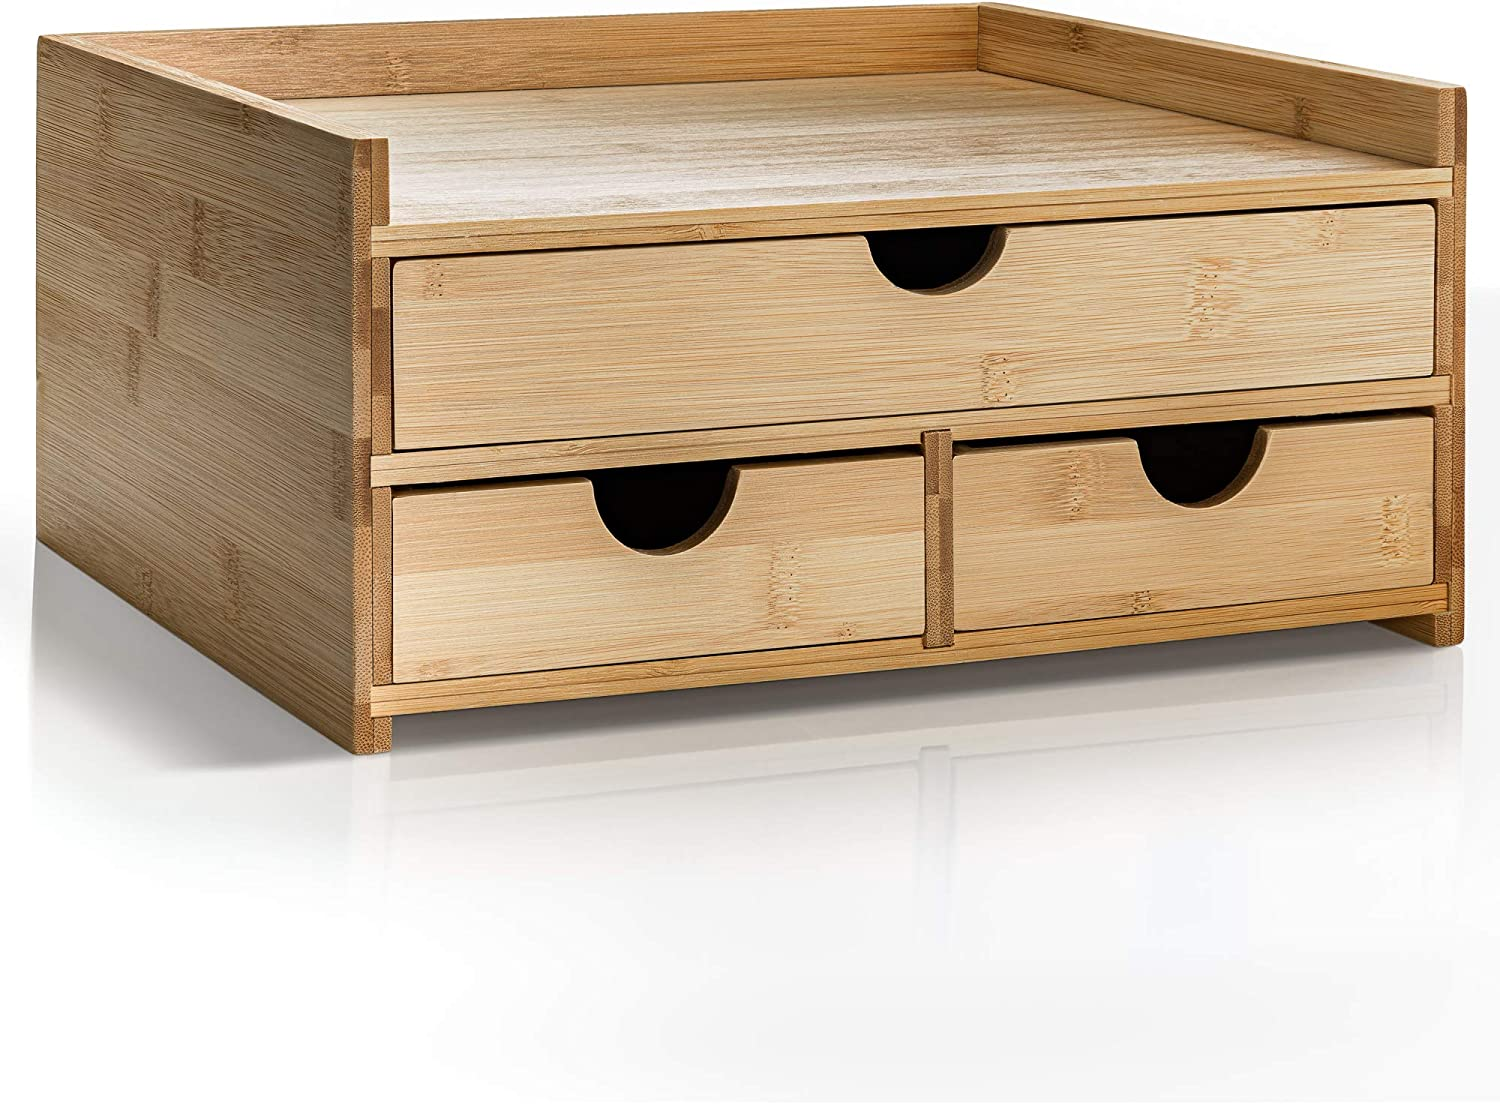 Prosumer's Choice Bamboo Desktop Organizer with 3 Drawers and US Letter Size Paper Tray for Home and Office